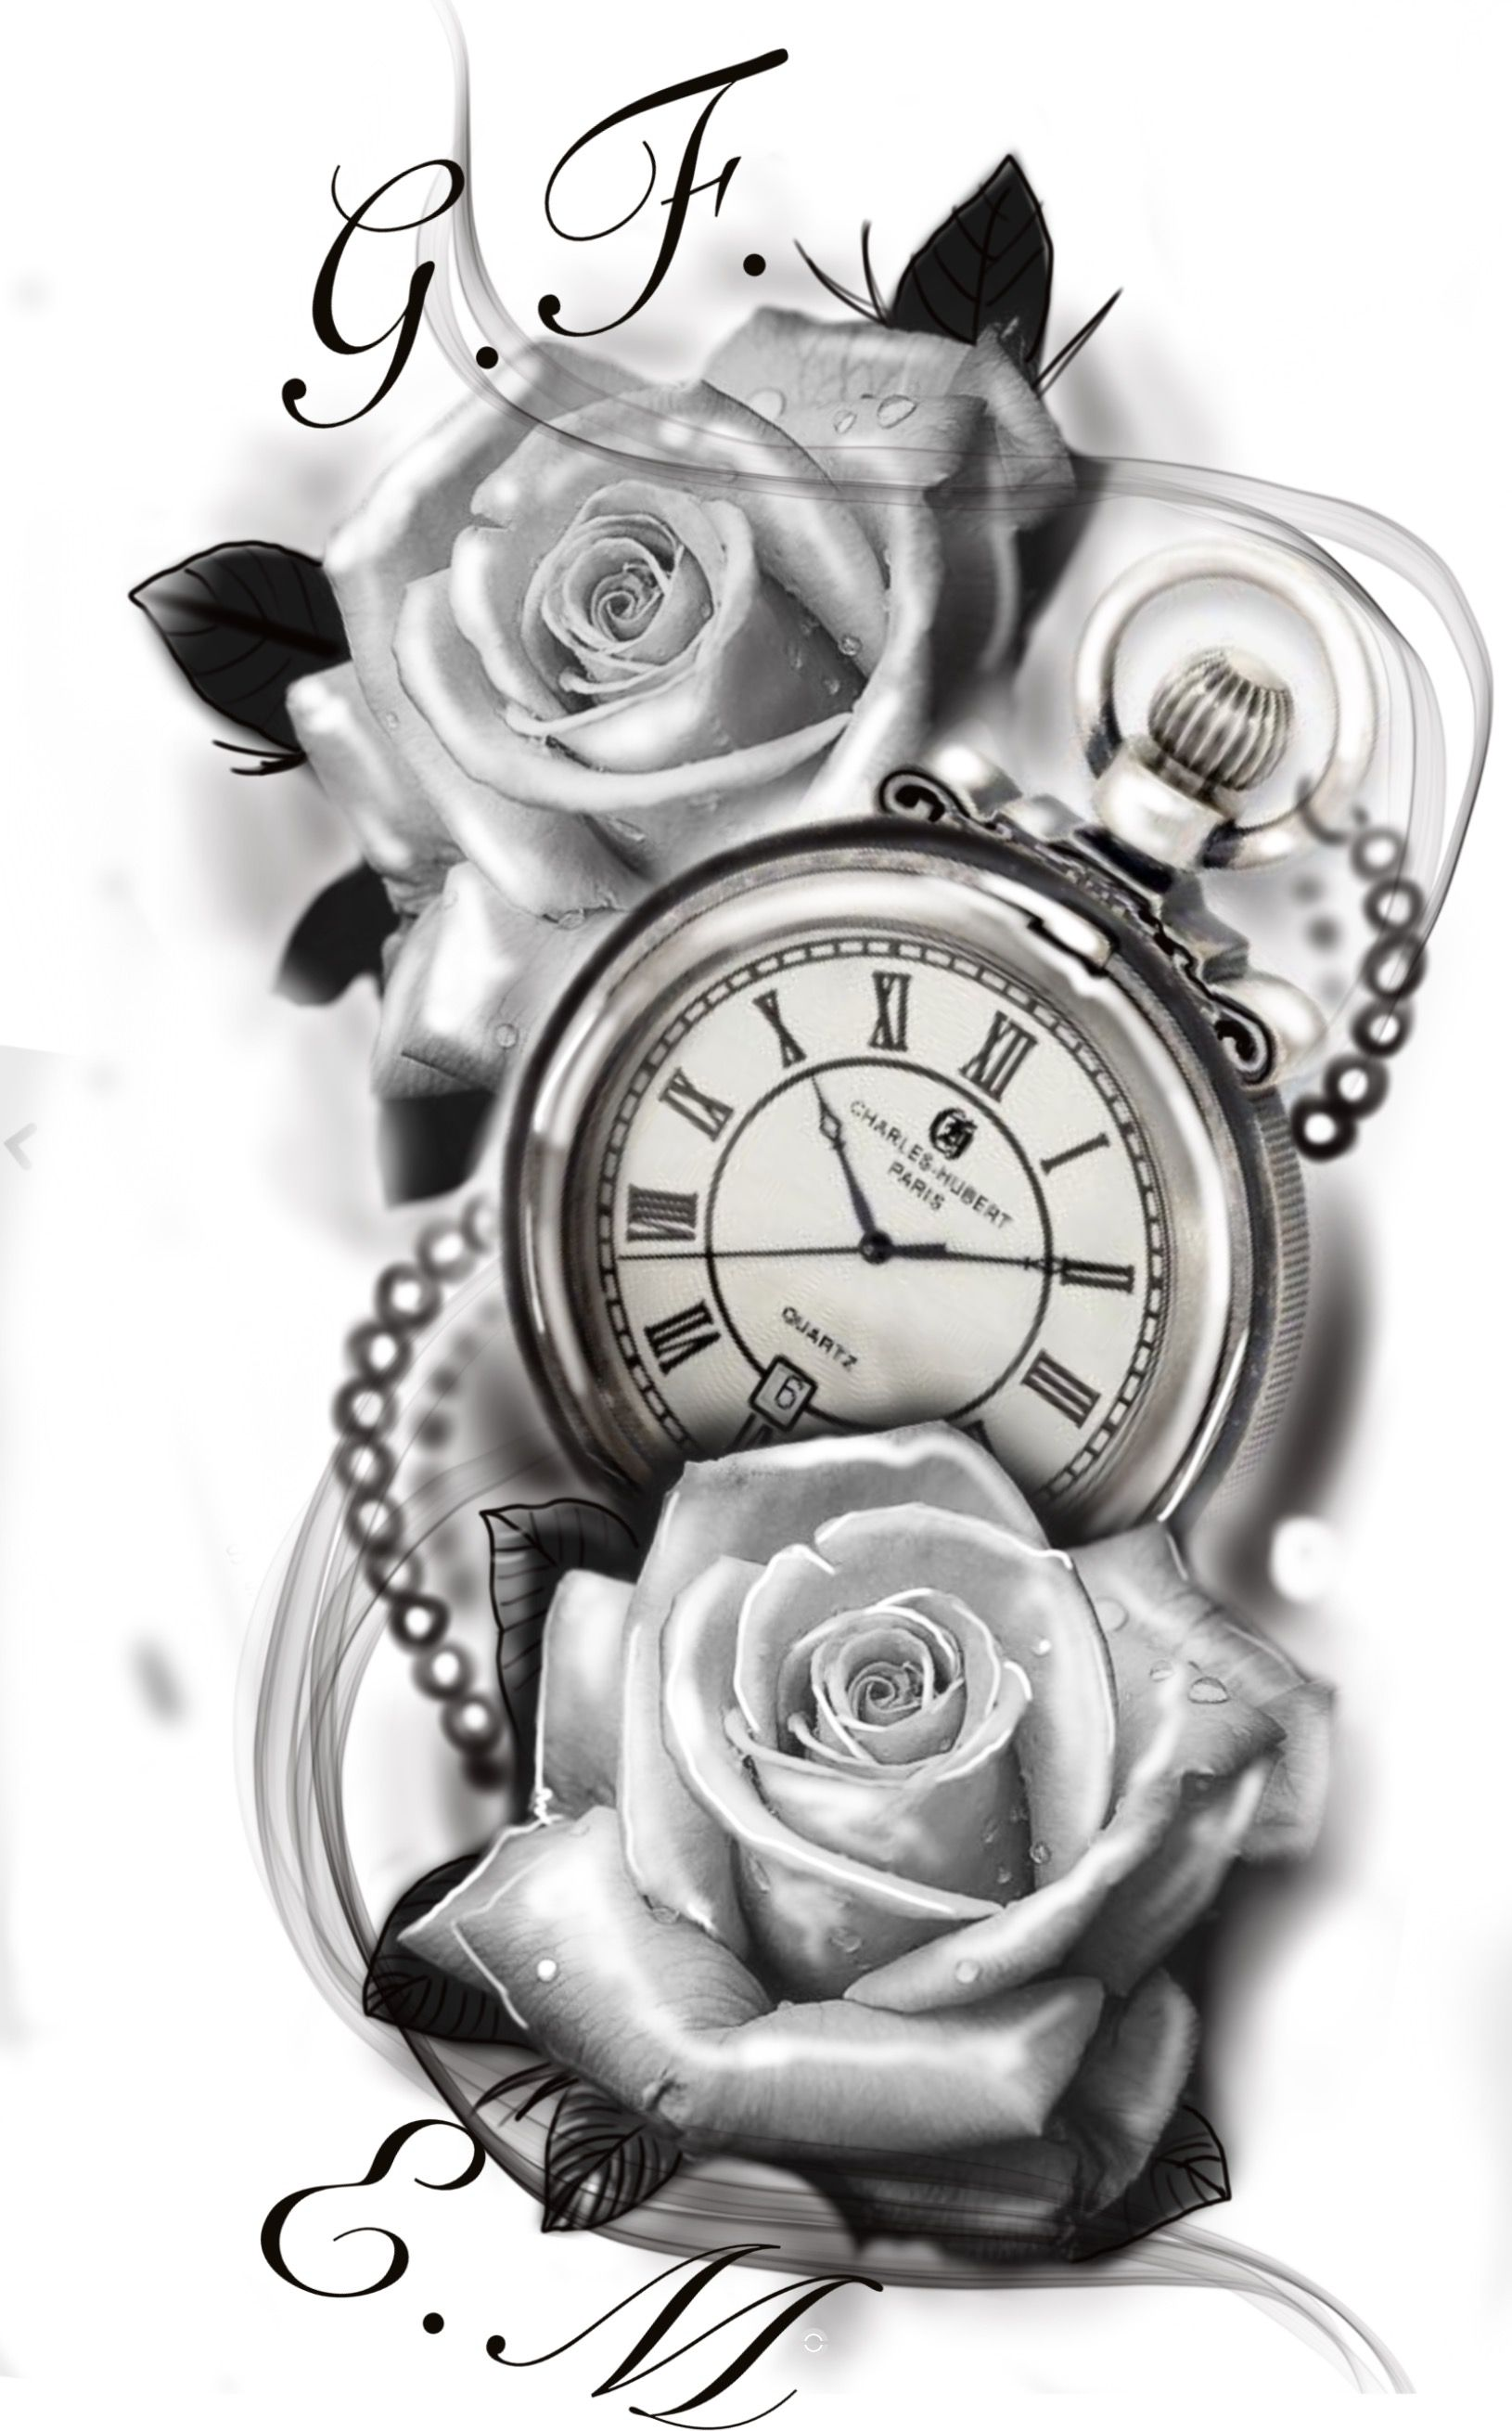 Rose Clock Tattoo Designs Drawing: Pin By Joži Puš On Tattoo (With Images)